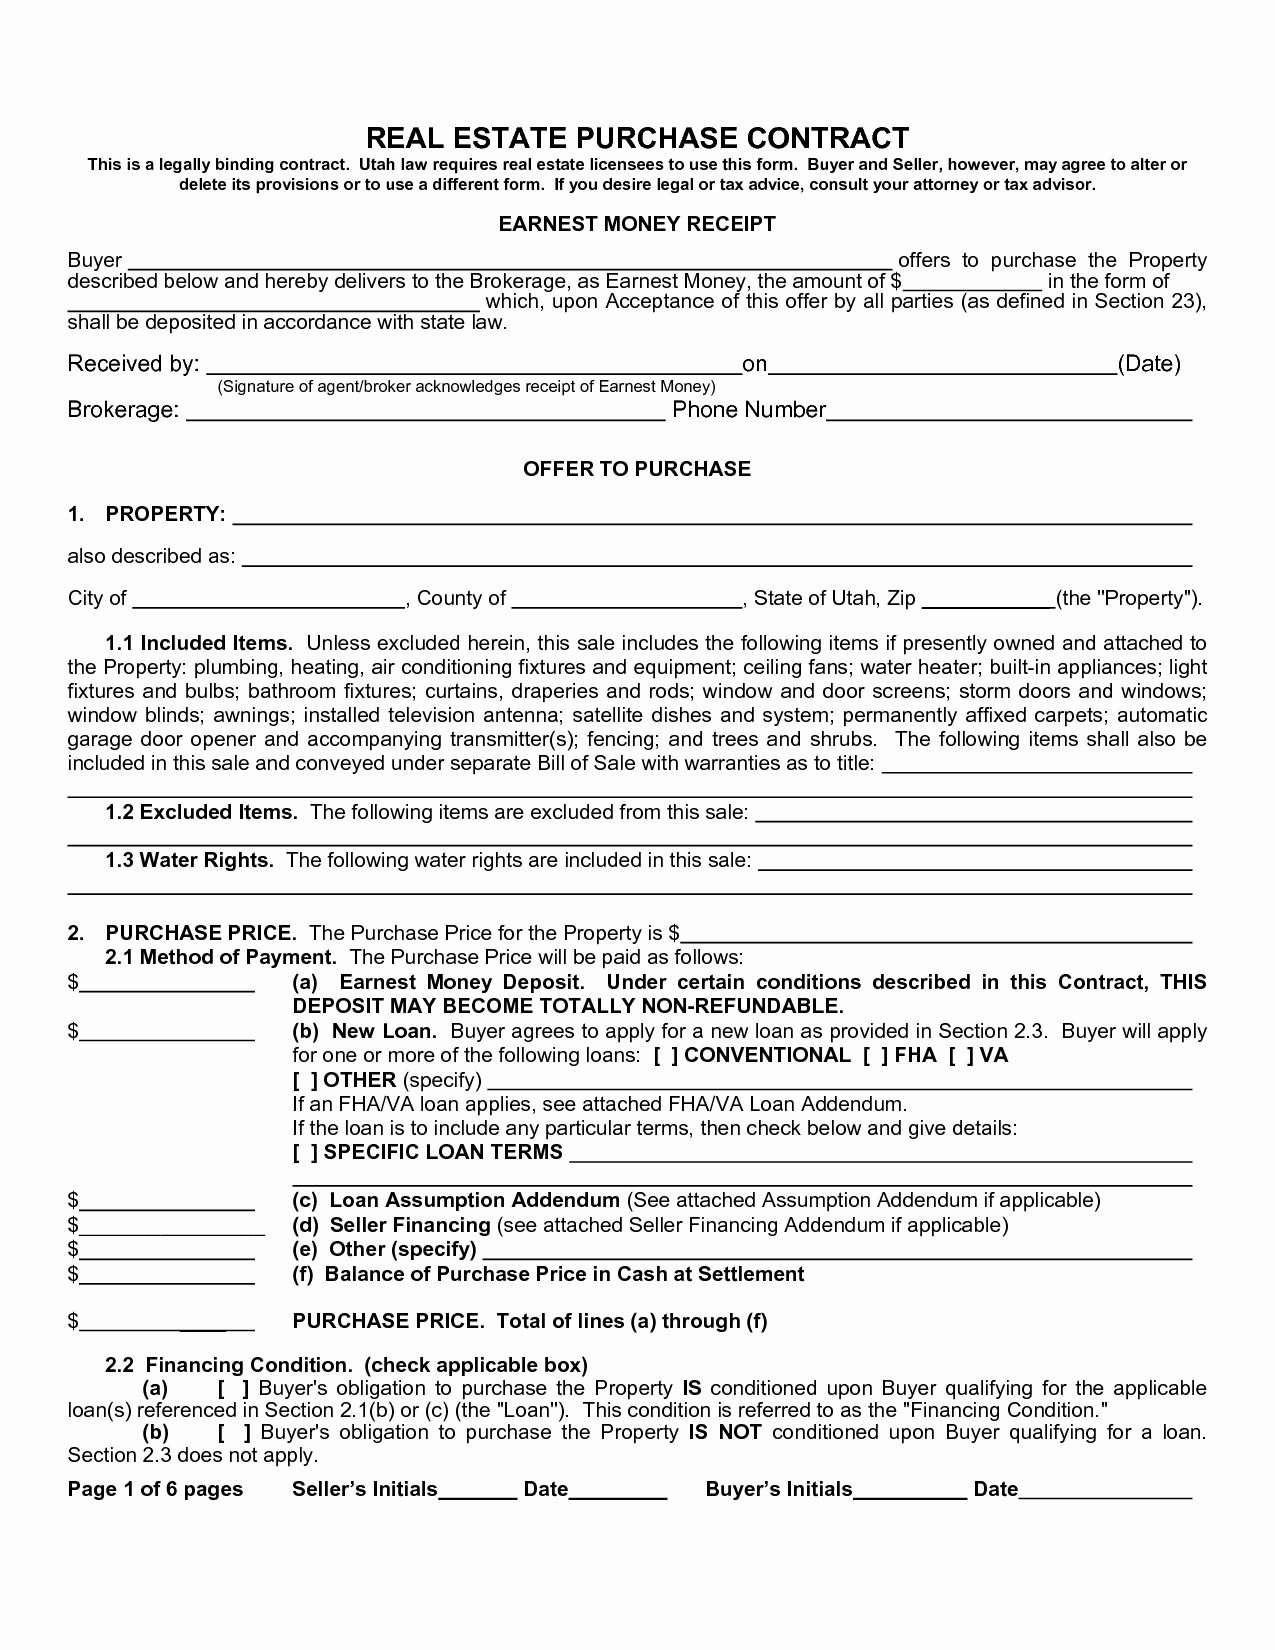 Buy Sell Agreements forms New Free Real Estate Purchase Agreement form Free Printable Documents